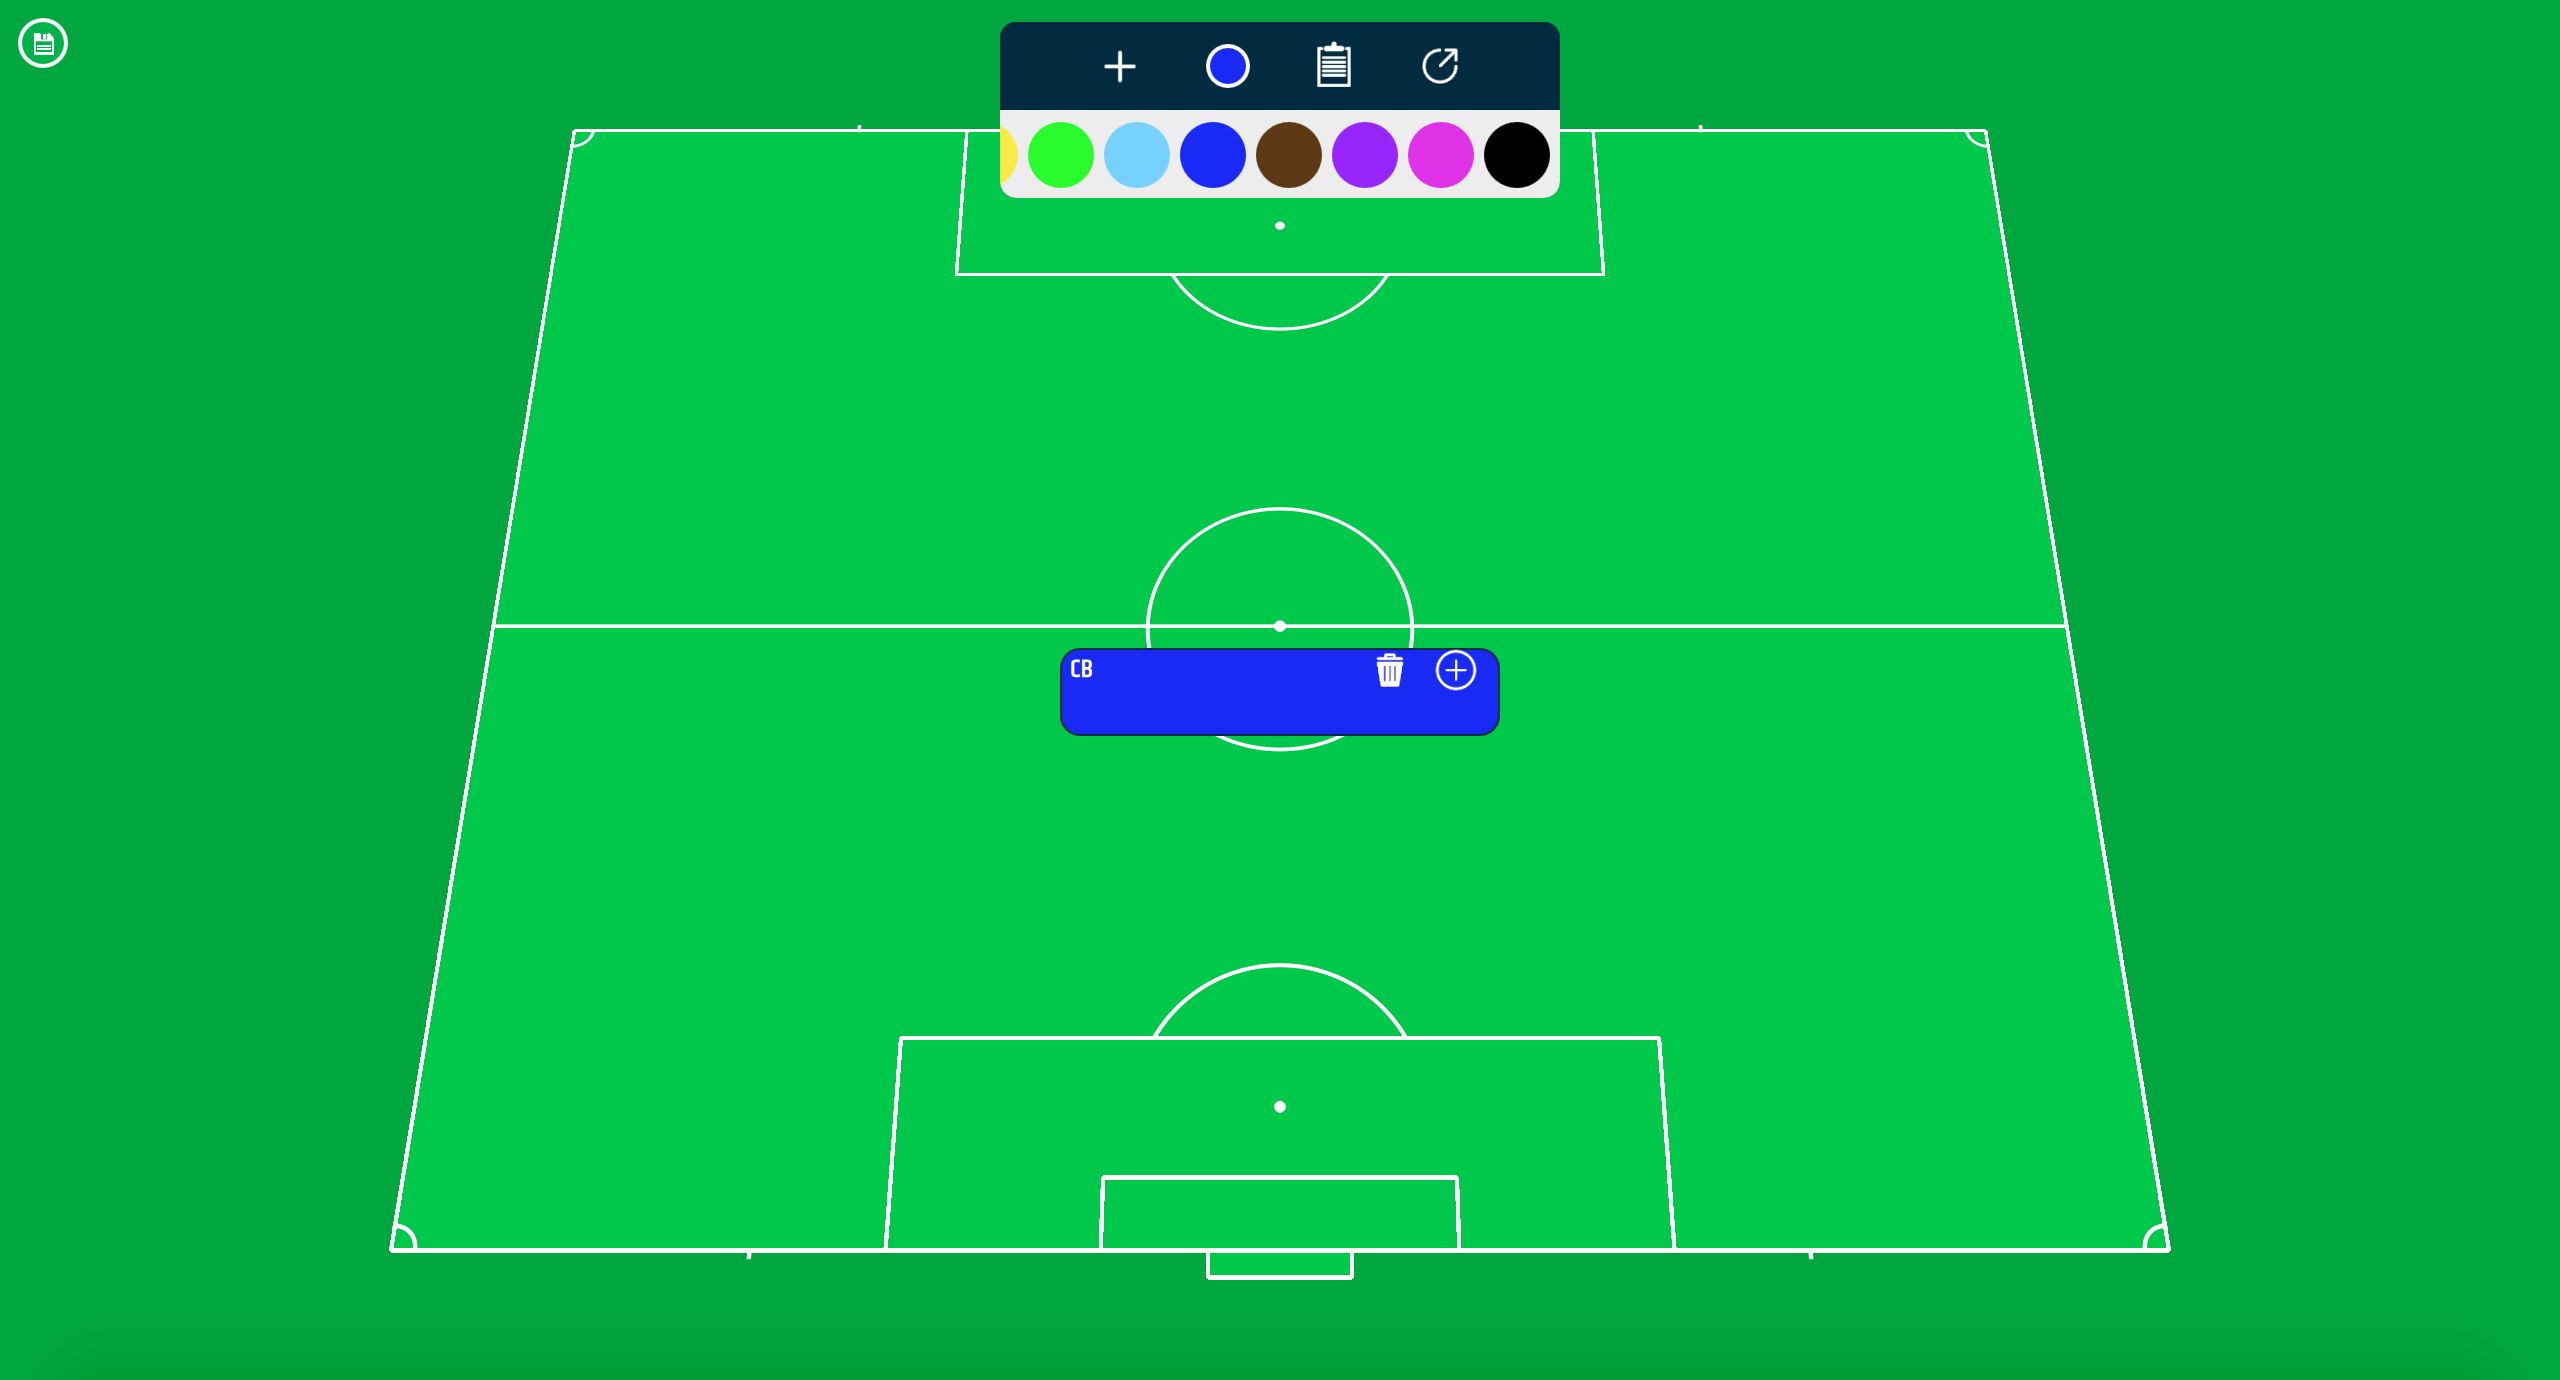 Creator_-_Depth_chart_-_Change_colour_of_the_tabs.png